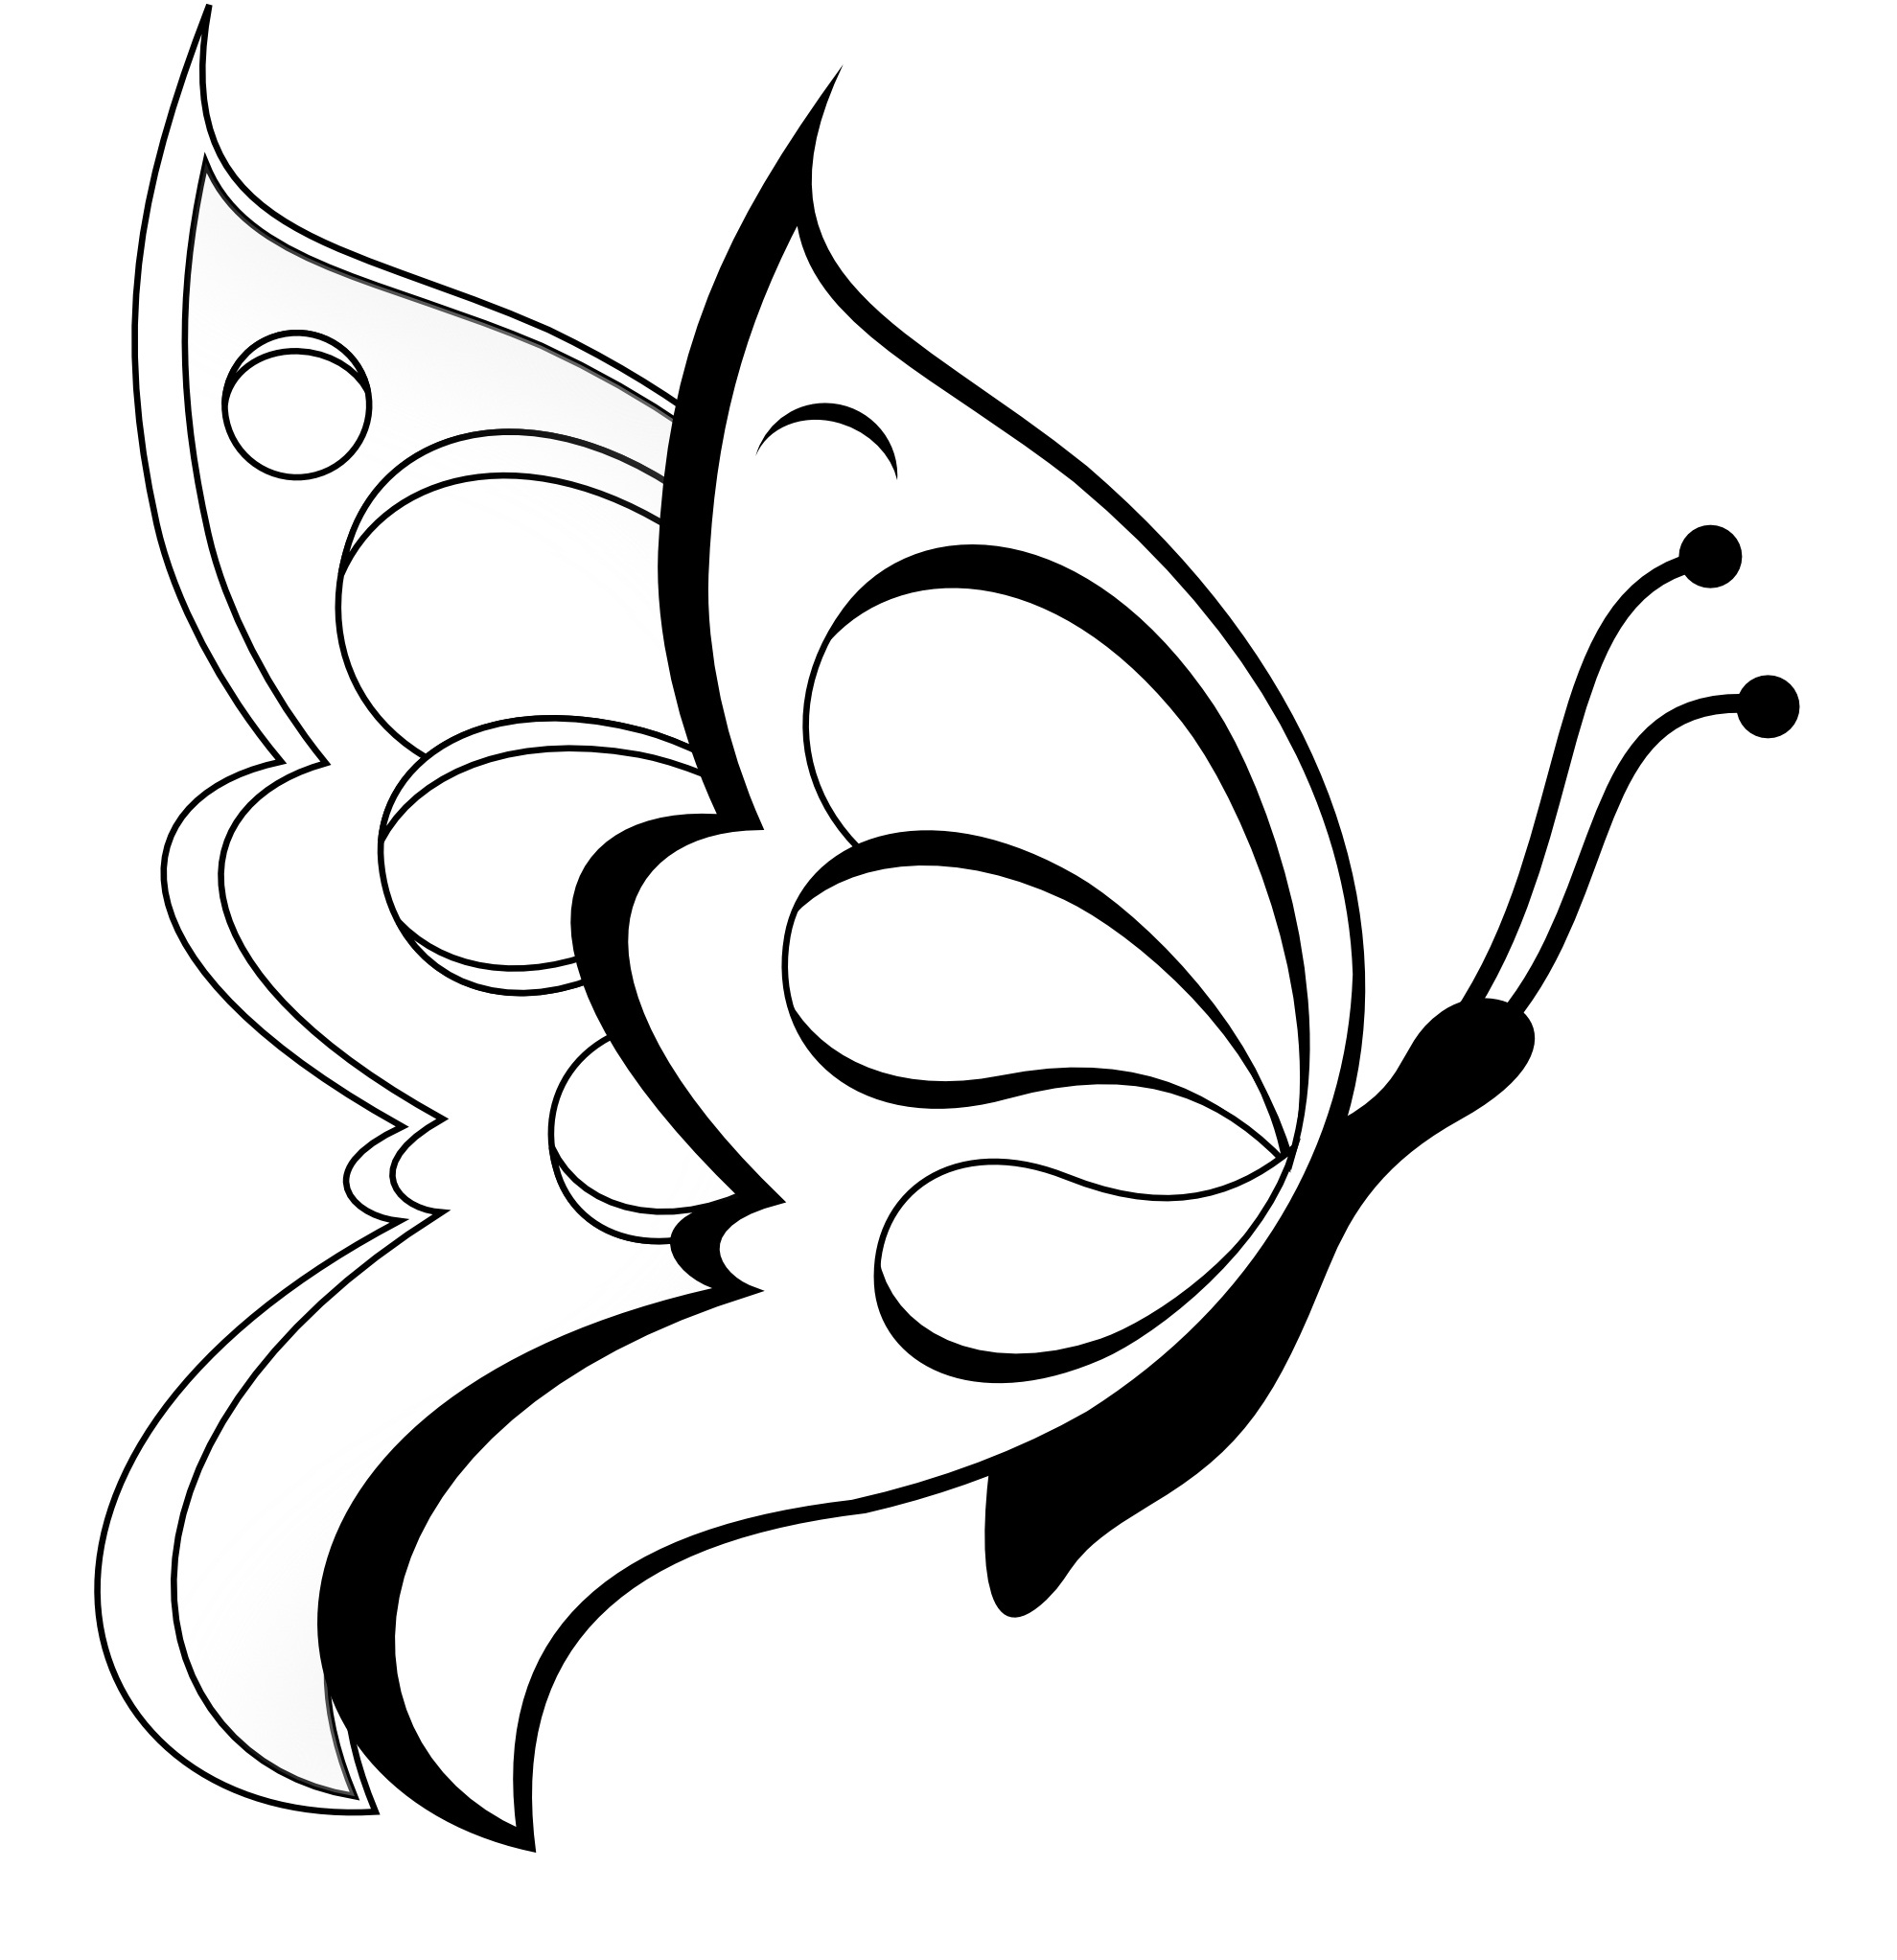 Easy Drawings For Kids Butterfly - ClipArt Best